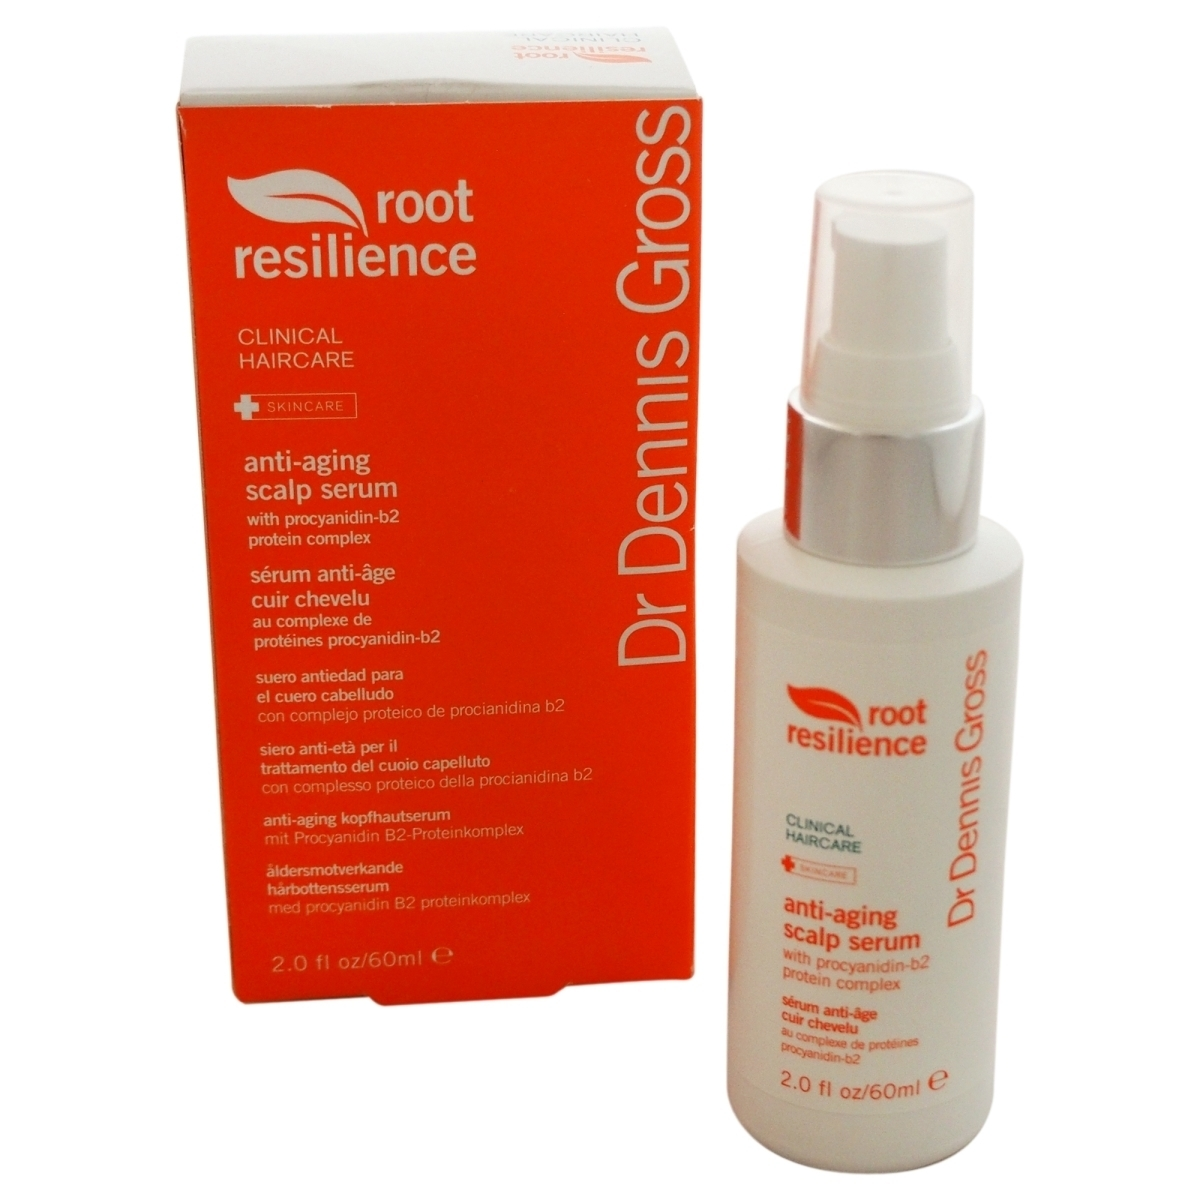 Dr. Dennis Gross U-HC-8640 Root Resilience Anti-Aging Scalp Serum for Unisex - 2 oz resilience in cambodia